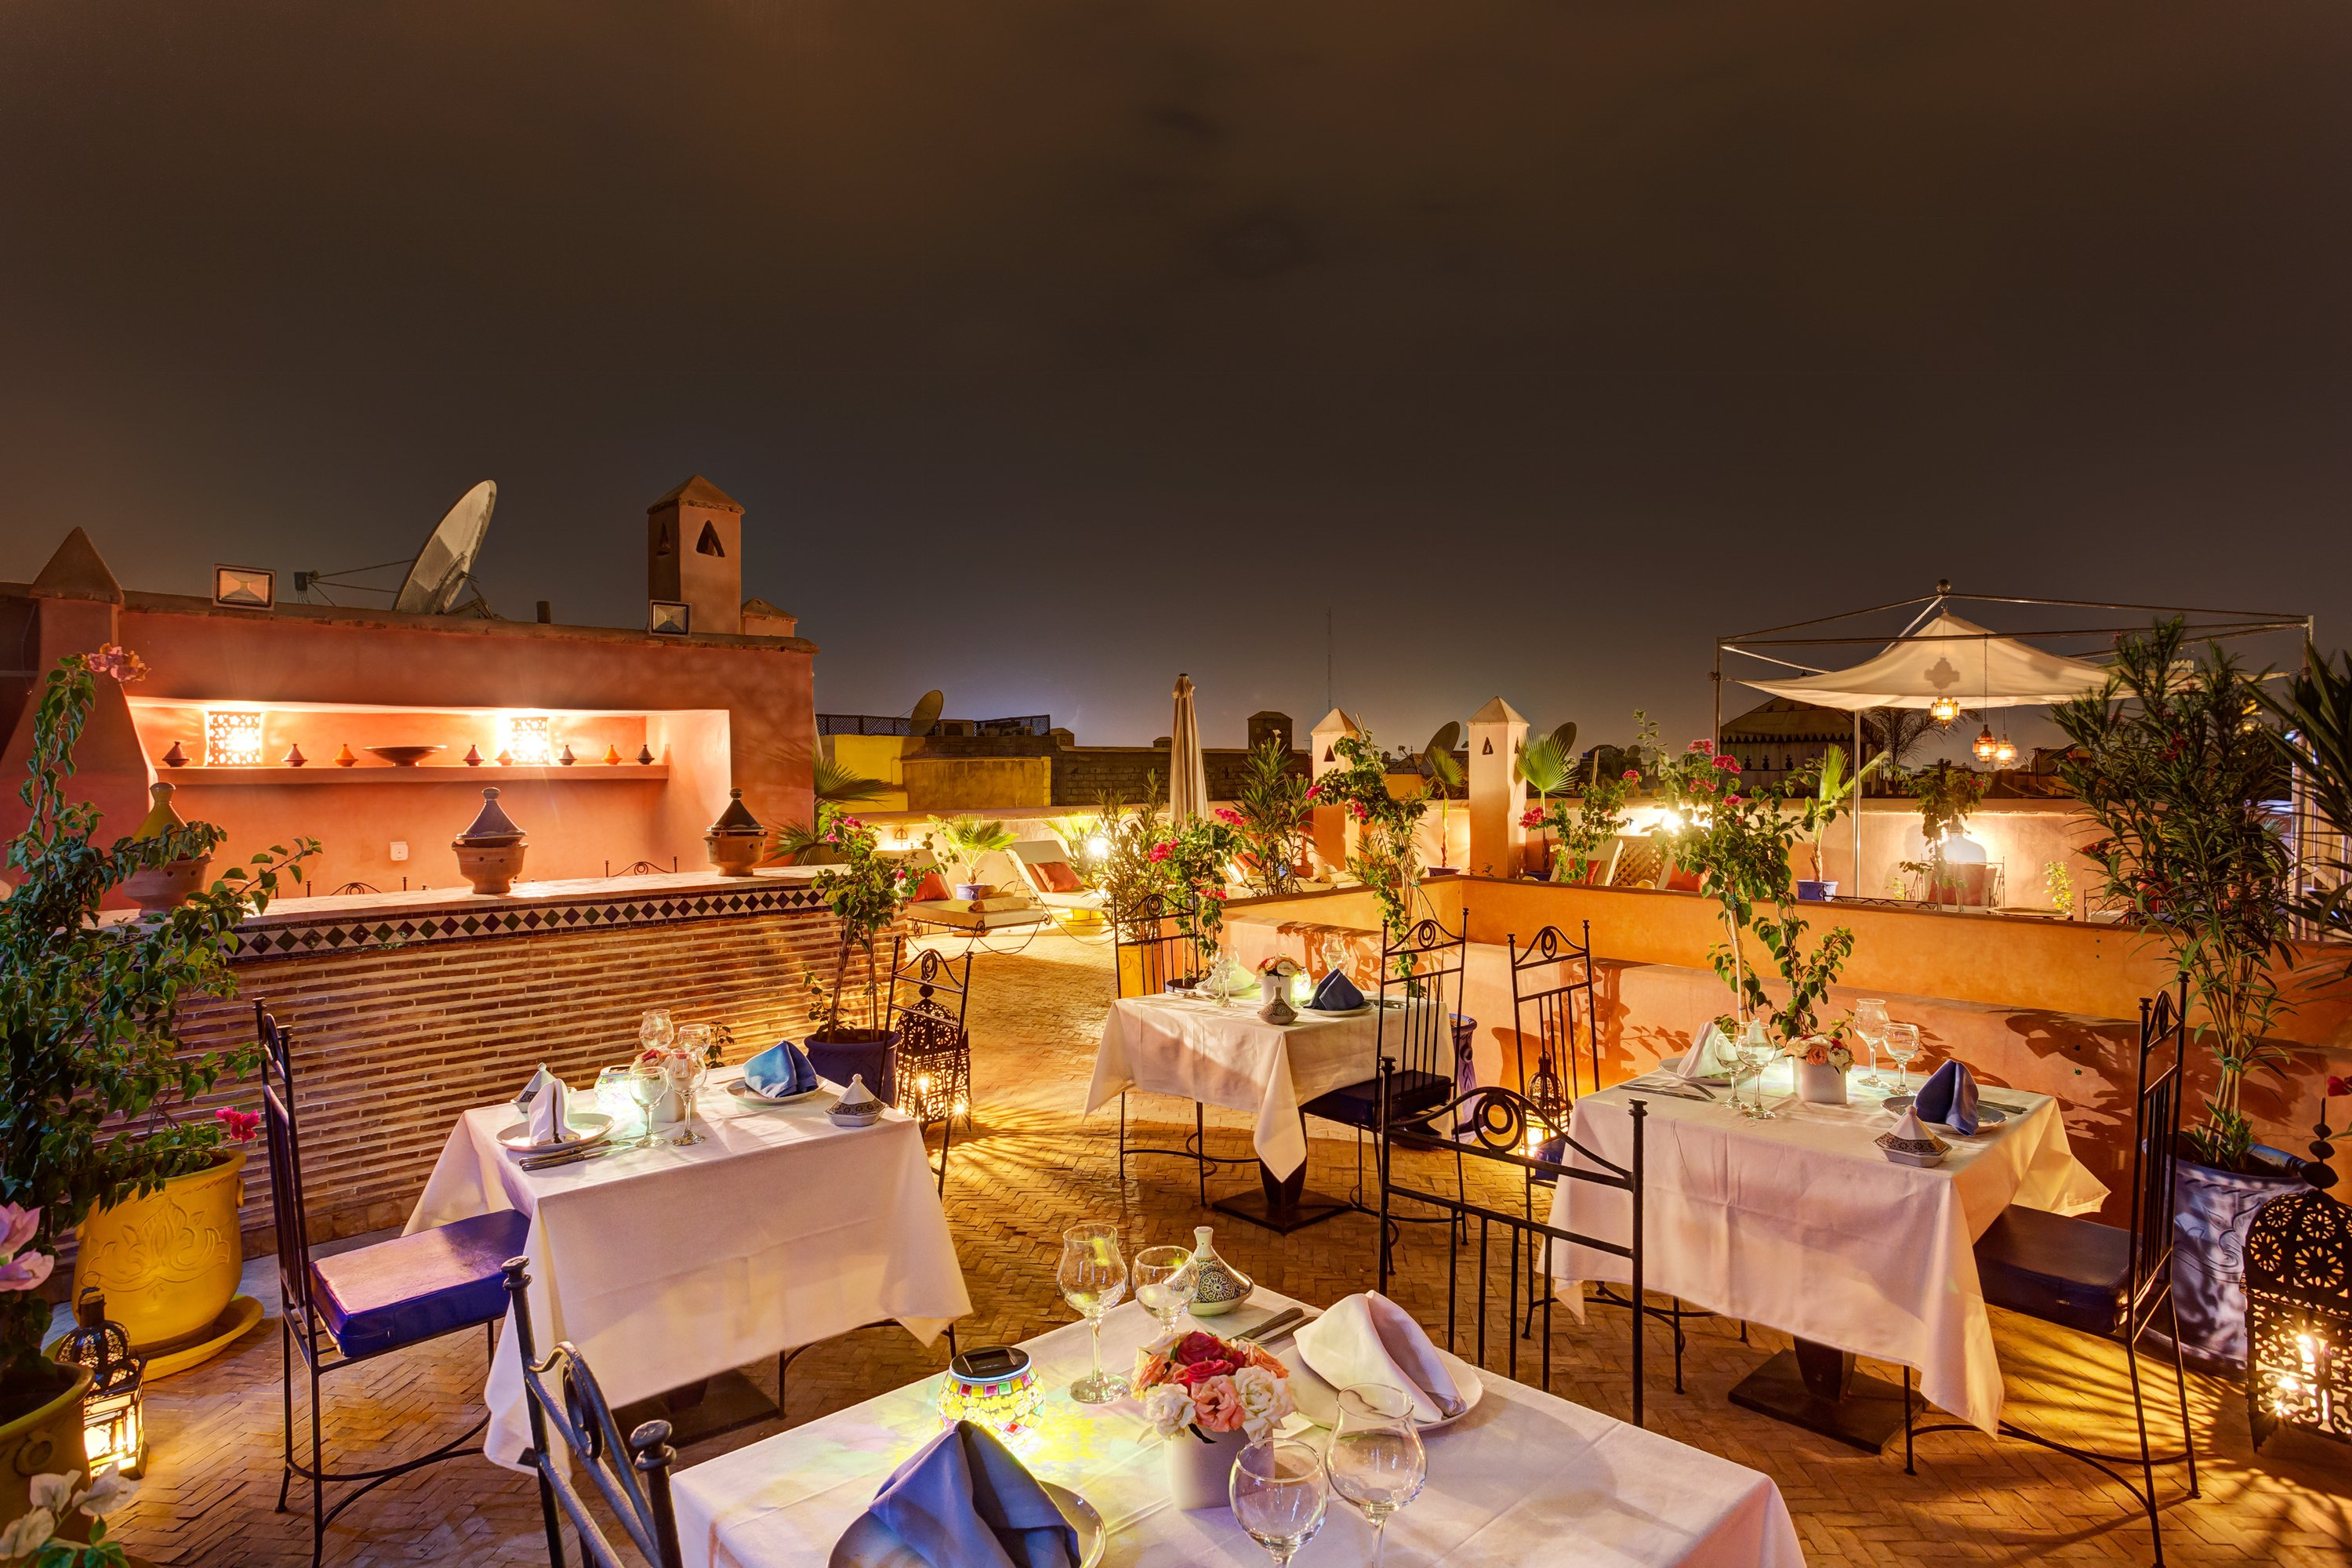 Arabian riad marrakech morocco guesthouse reviews photos price com - Photo riad marrakech ...